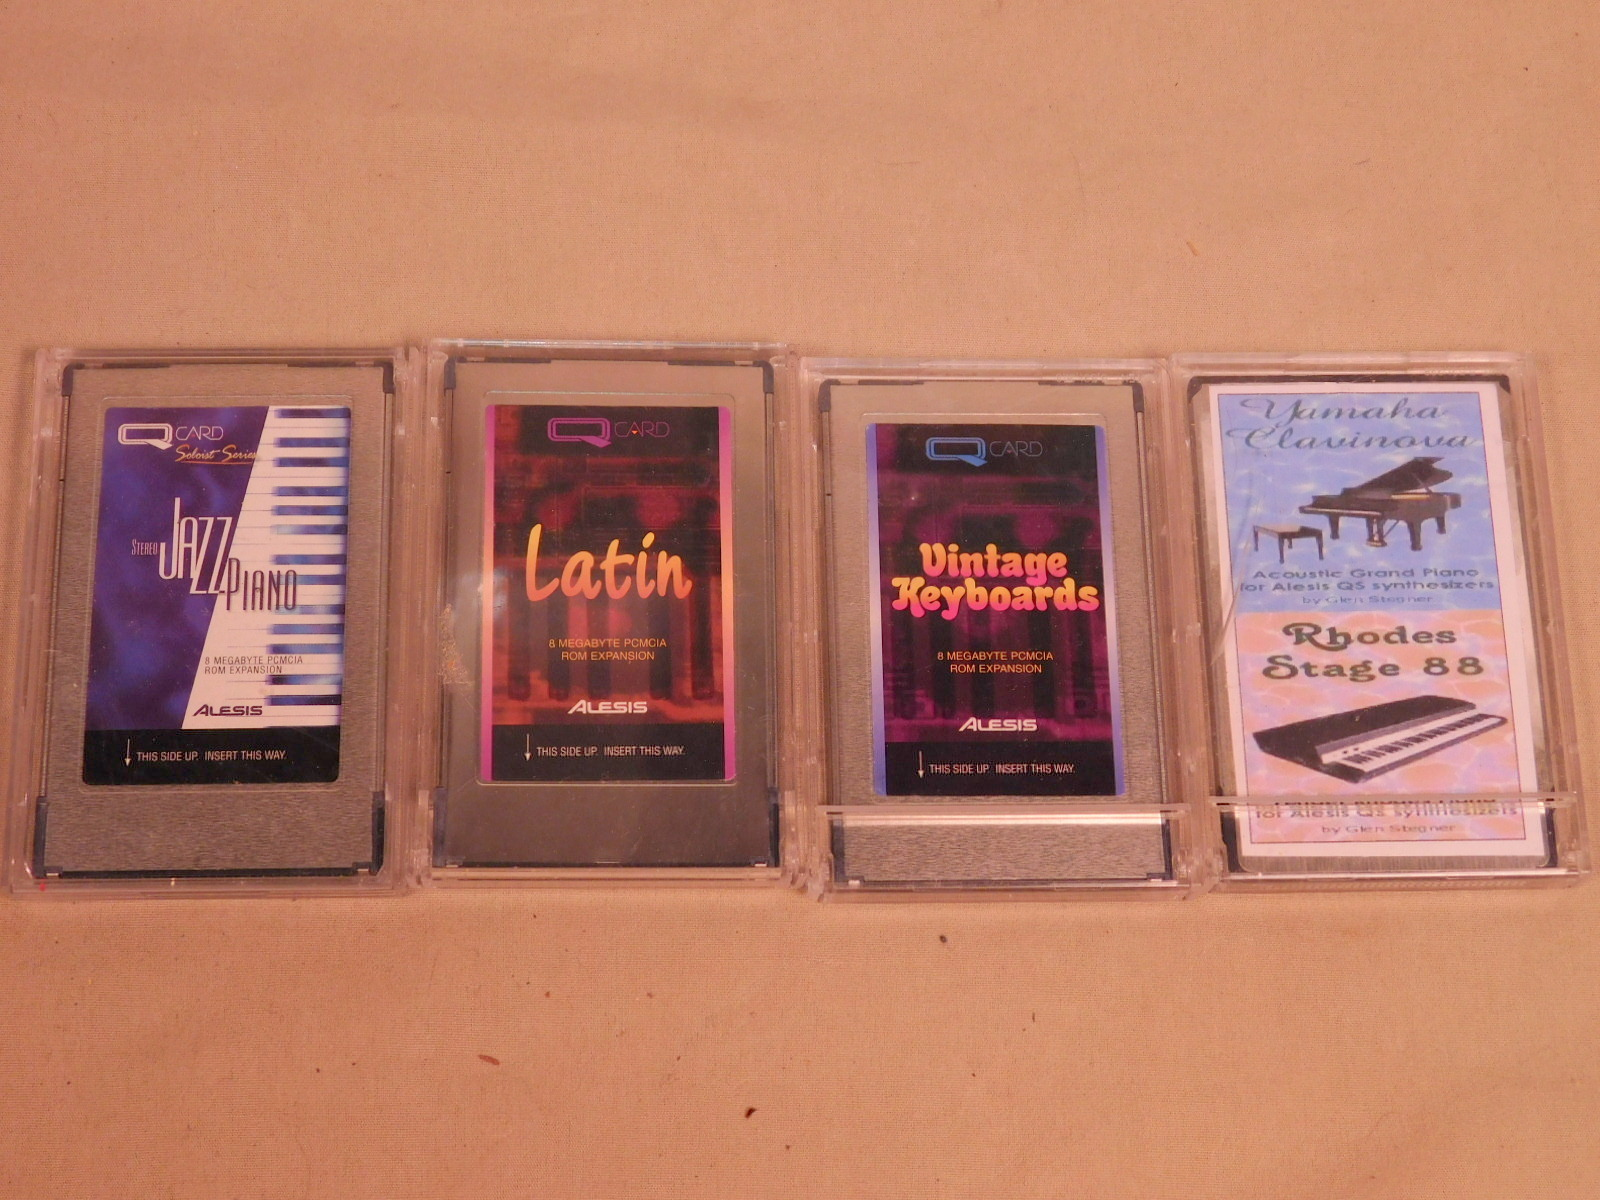 4 Q-CARDS - VINTAGE KEYS, LATIN, STEREO JAZZ PIANO, YAMAHA CLAV/RHODES STAGE 88